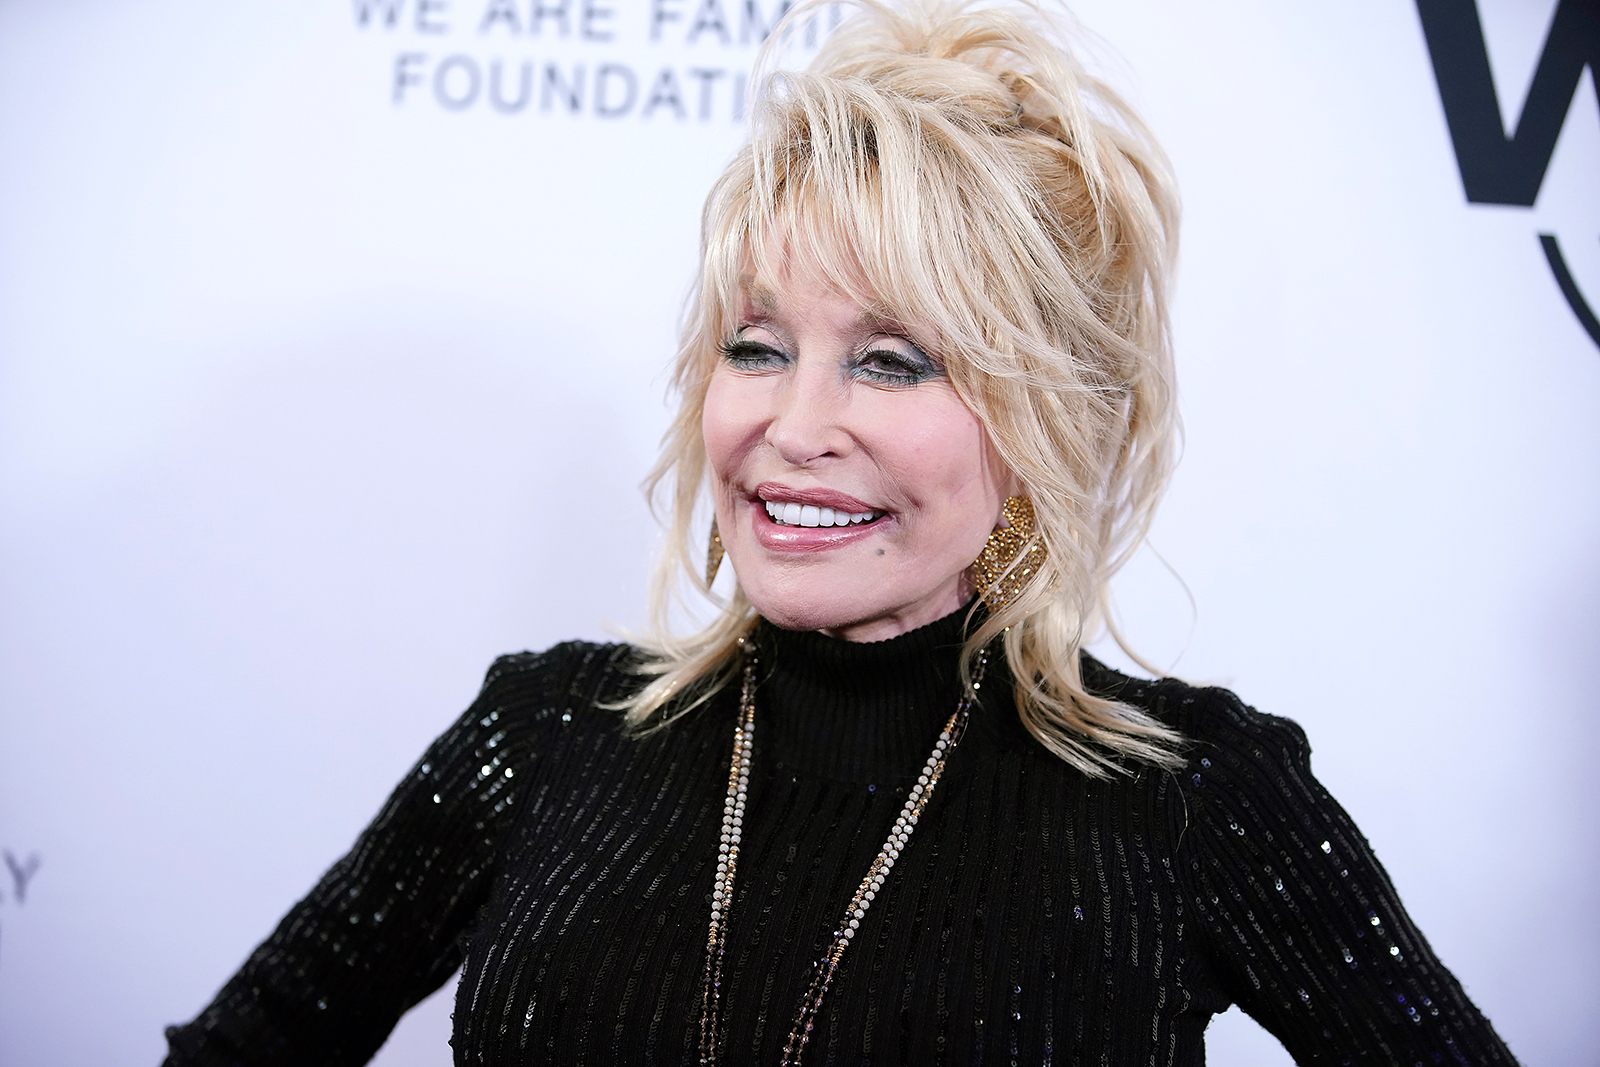 Tennessee is hoping to make Dolly Parton's 'Amazing Grace' an official state song